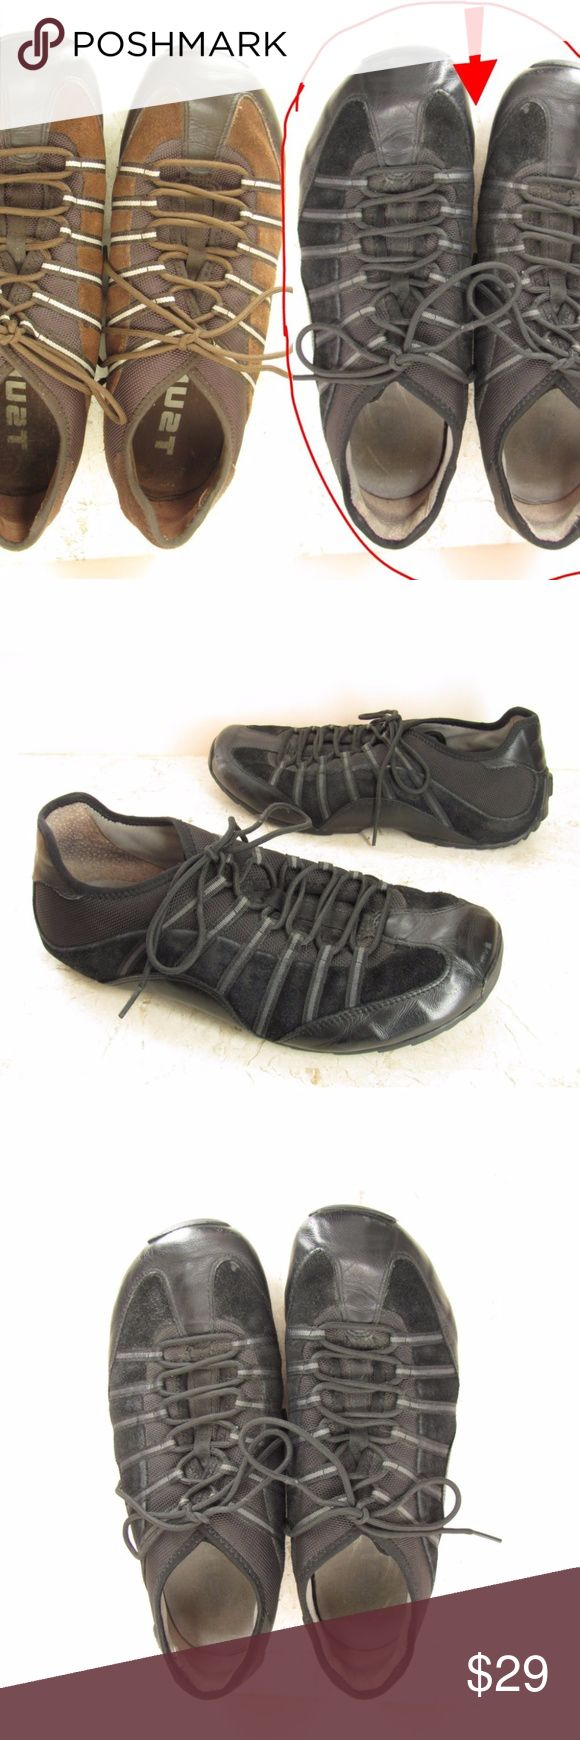 """Tsubo Athletic Shoes Black Leather Sneakers Men 12 Tsubo athletic shoes for men, size 12 M. Available in your choice of BLACK on this listing or Brown.   These awesome sneakers have leather and textile uppers and non slip rubber soles, making them perfect for running, hiking or power walking as well as comfortable everyday wear.   The insole measures about: 11 1/8"""" from the toe to the heel 3 1/2"""" across the foot ball 3/4"""" heel height  pe or pria 171111-214-Mns Blk 2, Brn 2 Tsubo Shoes…"""